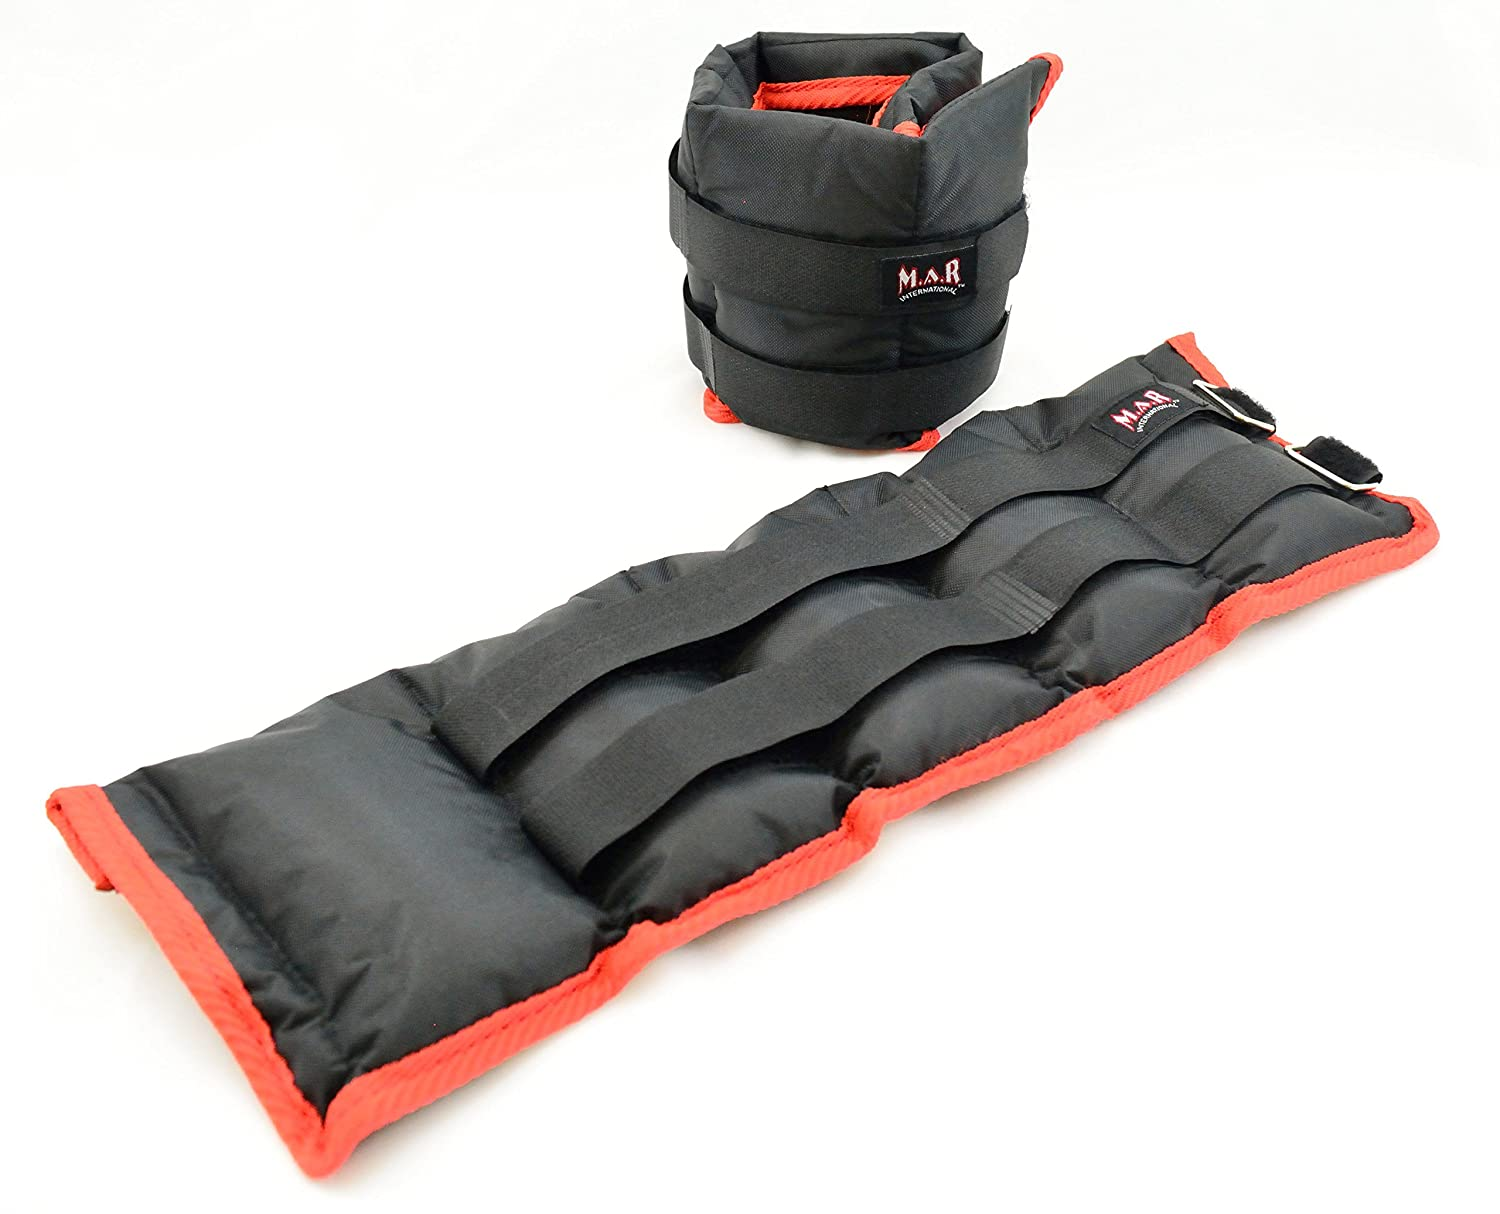 Ankle, Wrist Weights (2x 2= 4Kg) are ideal for adding extra resistance to your workout. It is made from nylon material with an adjustable Velcro strap. Fits easily around wrists or ankles. Great for building strength and speed in arms and legs. Excellent f